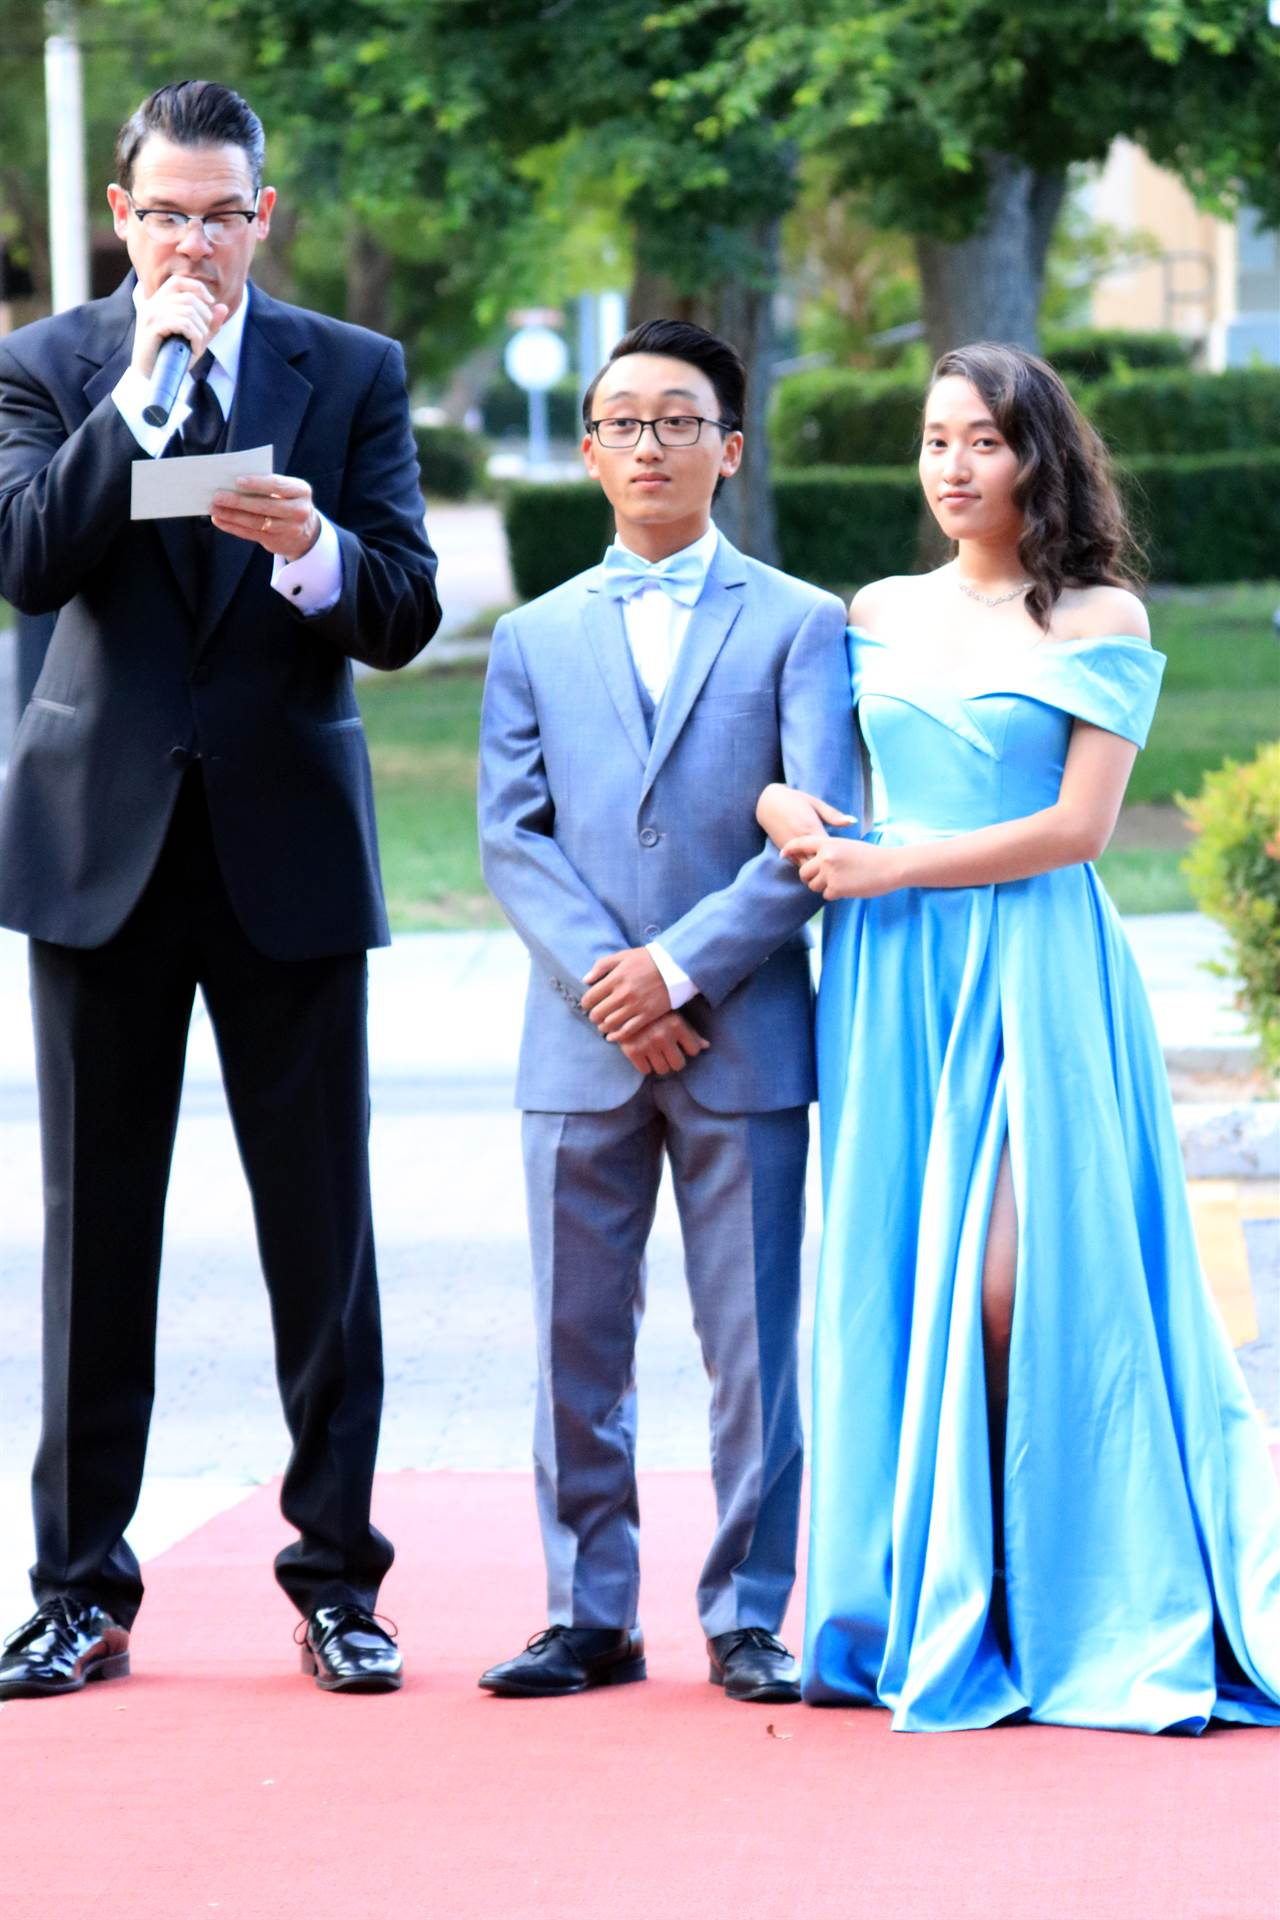 Students on Red Carpet